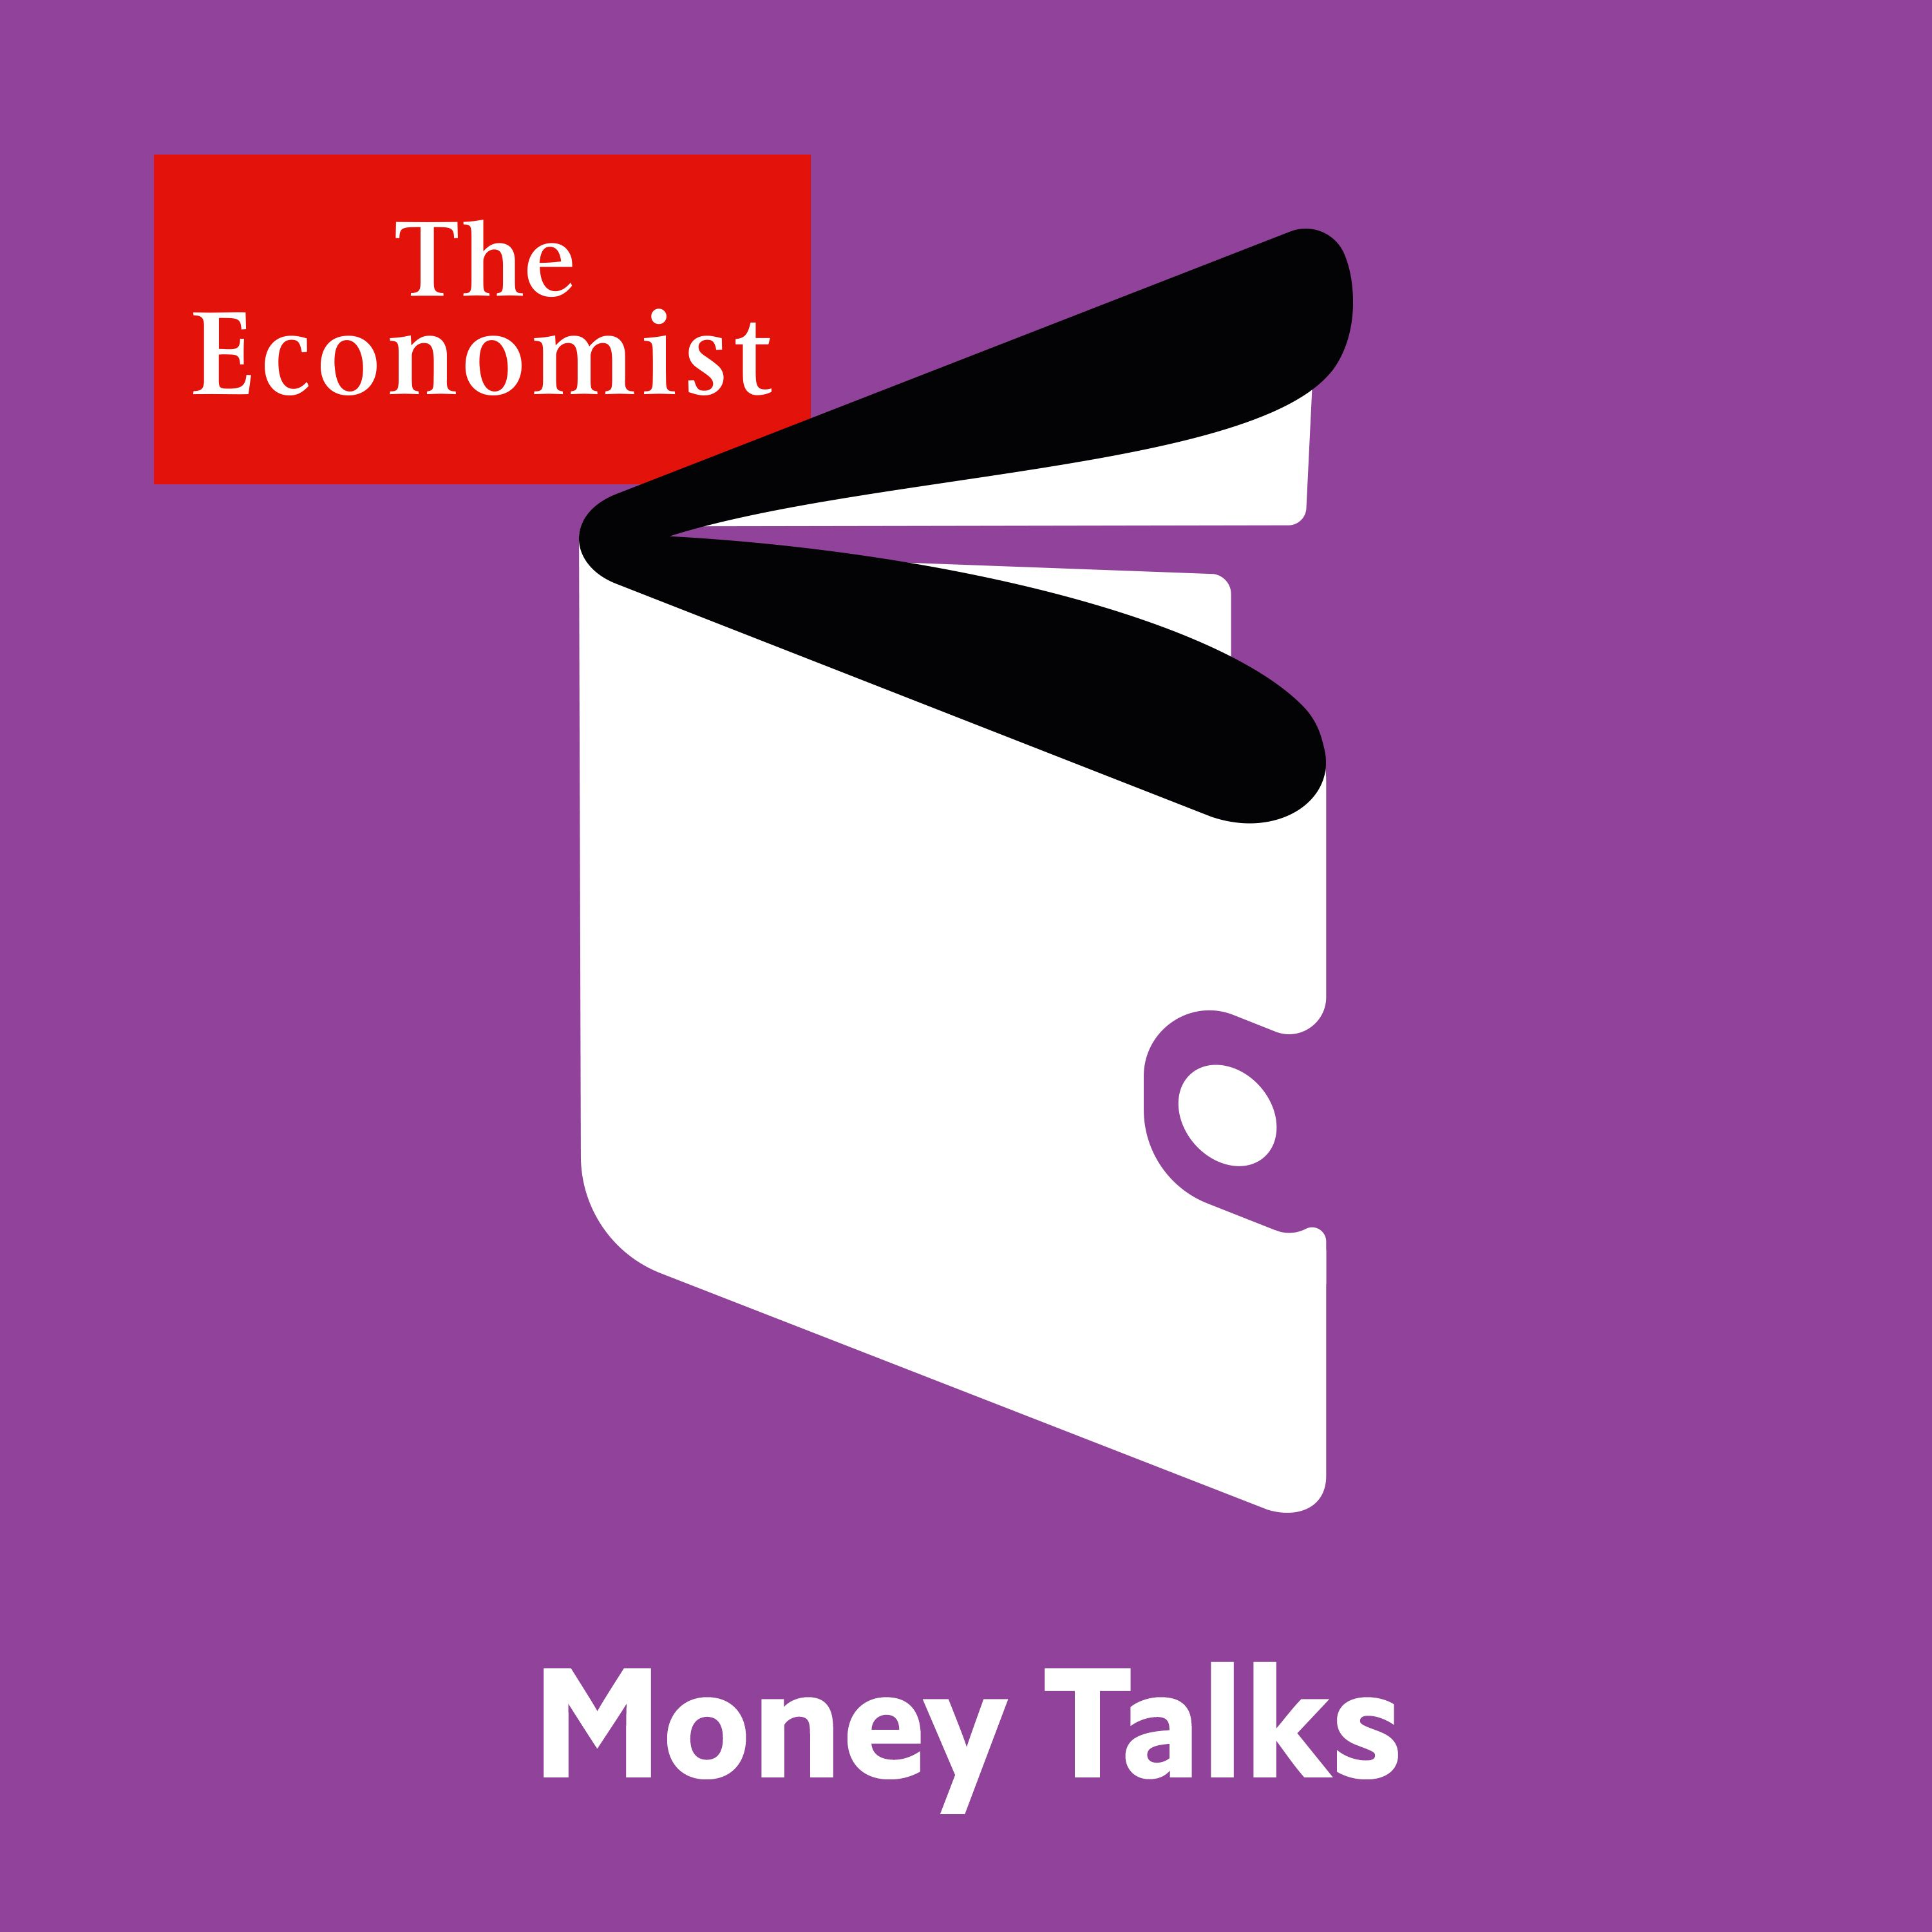 Money Talks: Does the world still need banks?